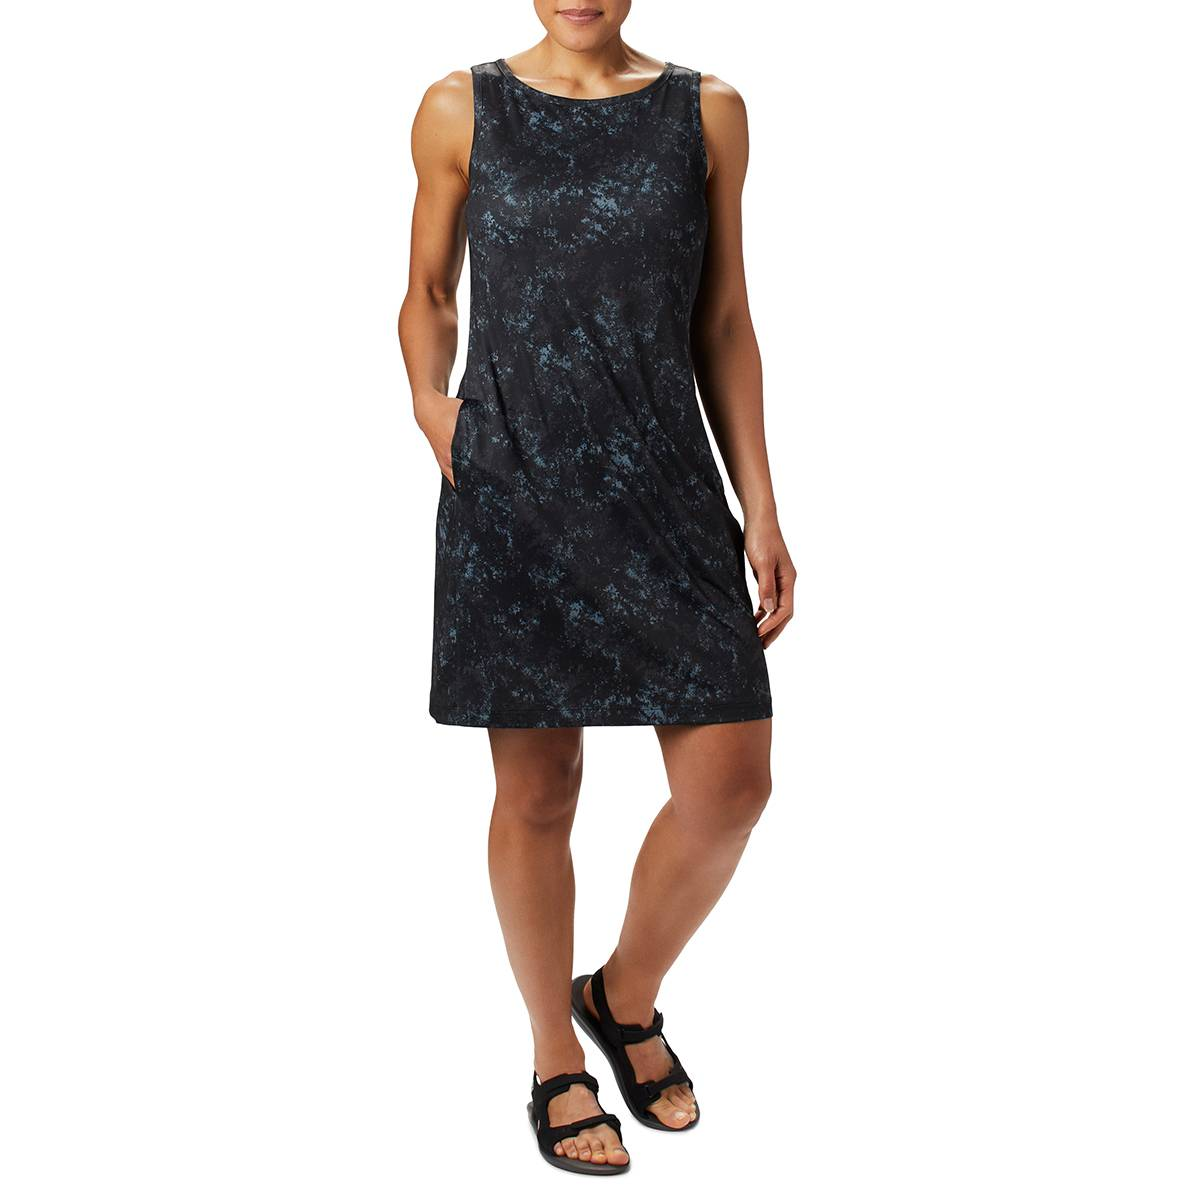 Columbia Women's Chill River Printed Dress - Size XL